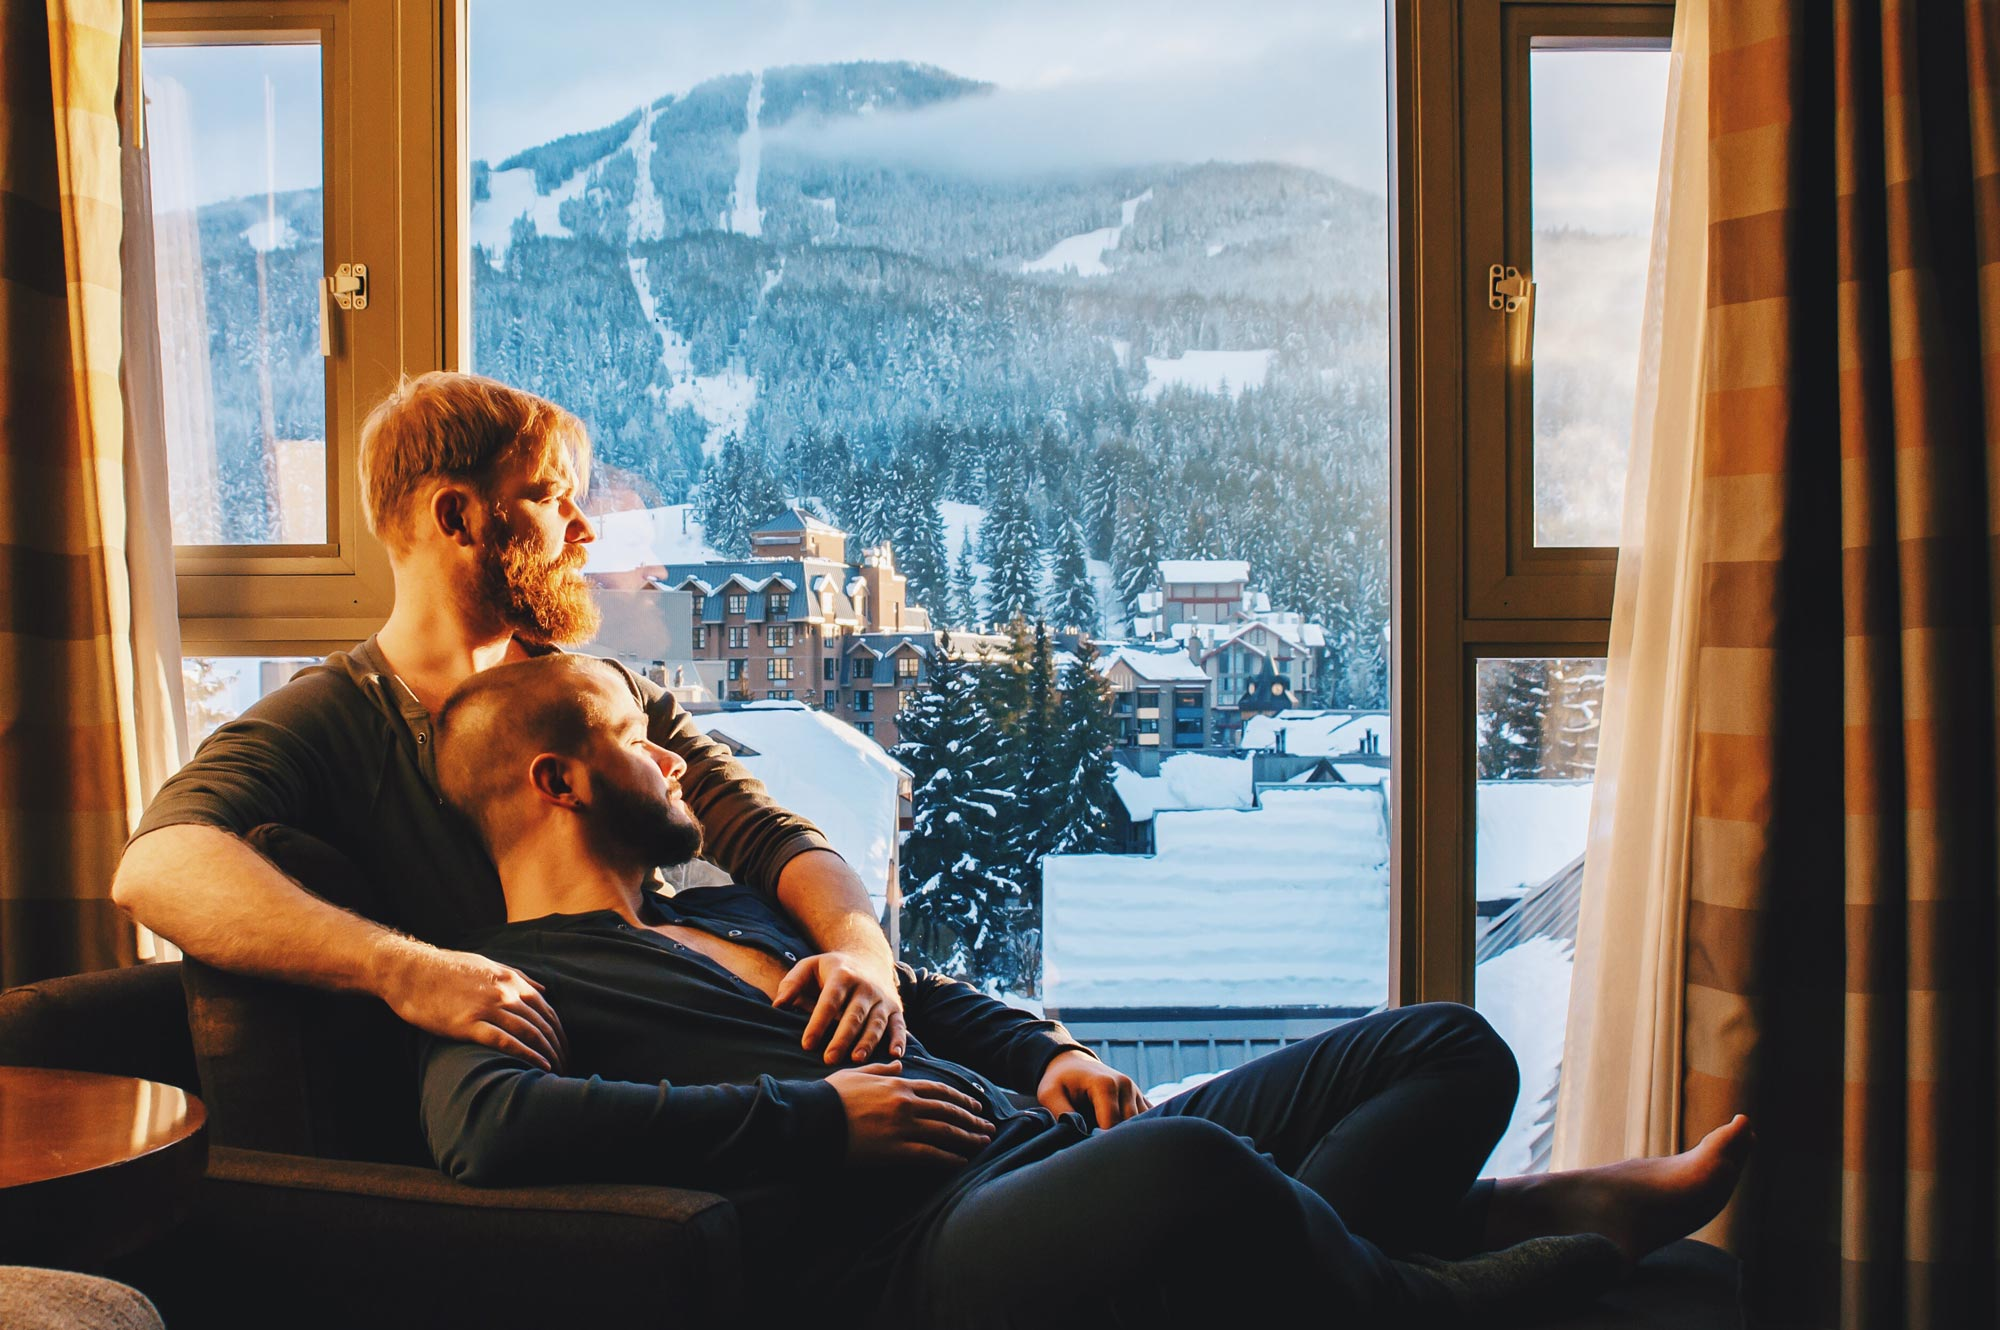 Whistler Pride Ski Festival Whistler Pride Gay Skiwoche Whistler Pride Gay Skiwoche Couple of Men - Winter Trip to Canada for Whistler Pride and Ski Festival 2019 © Coupleofmen.com